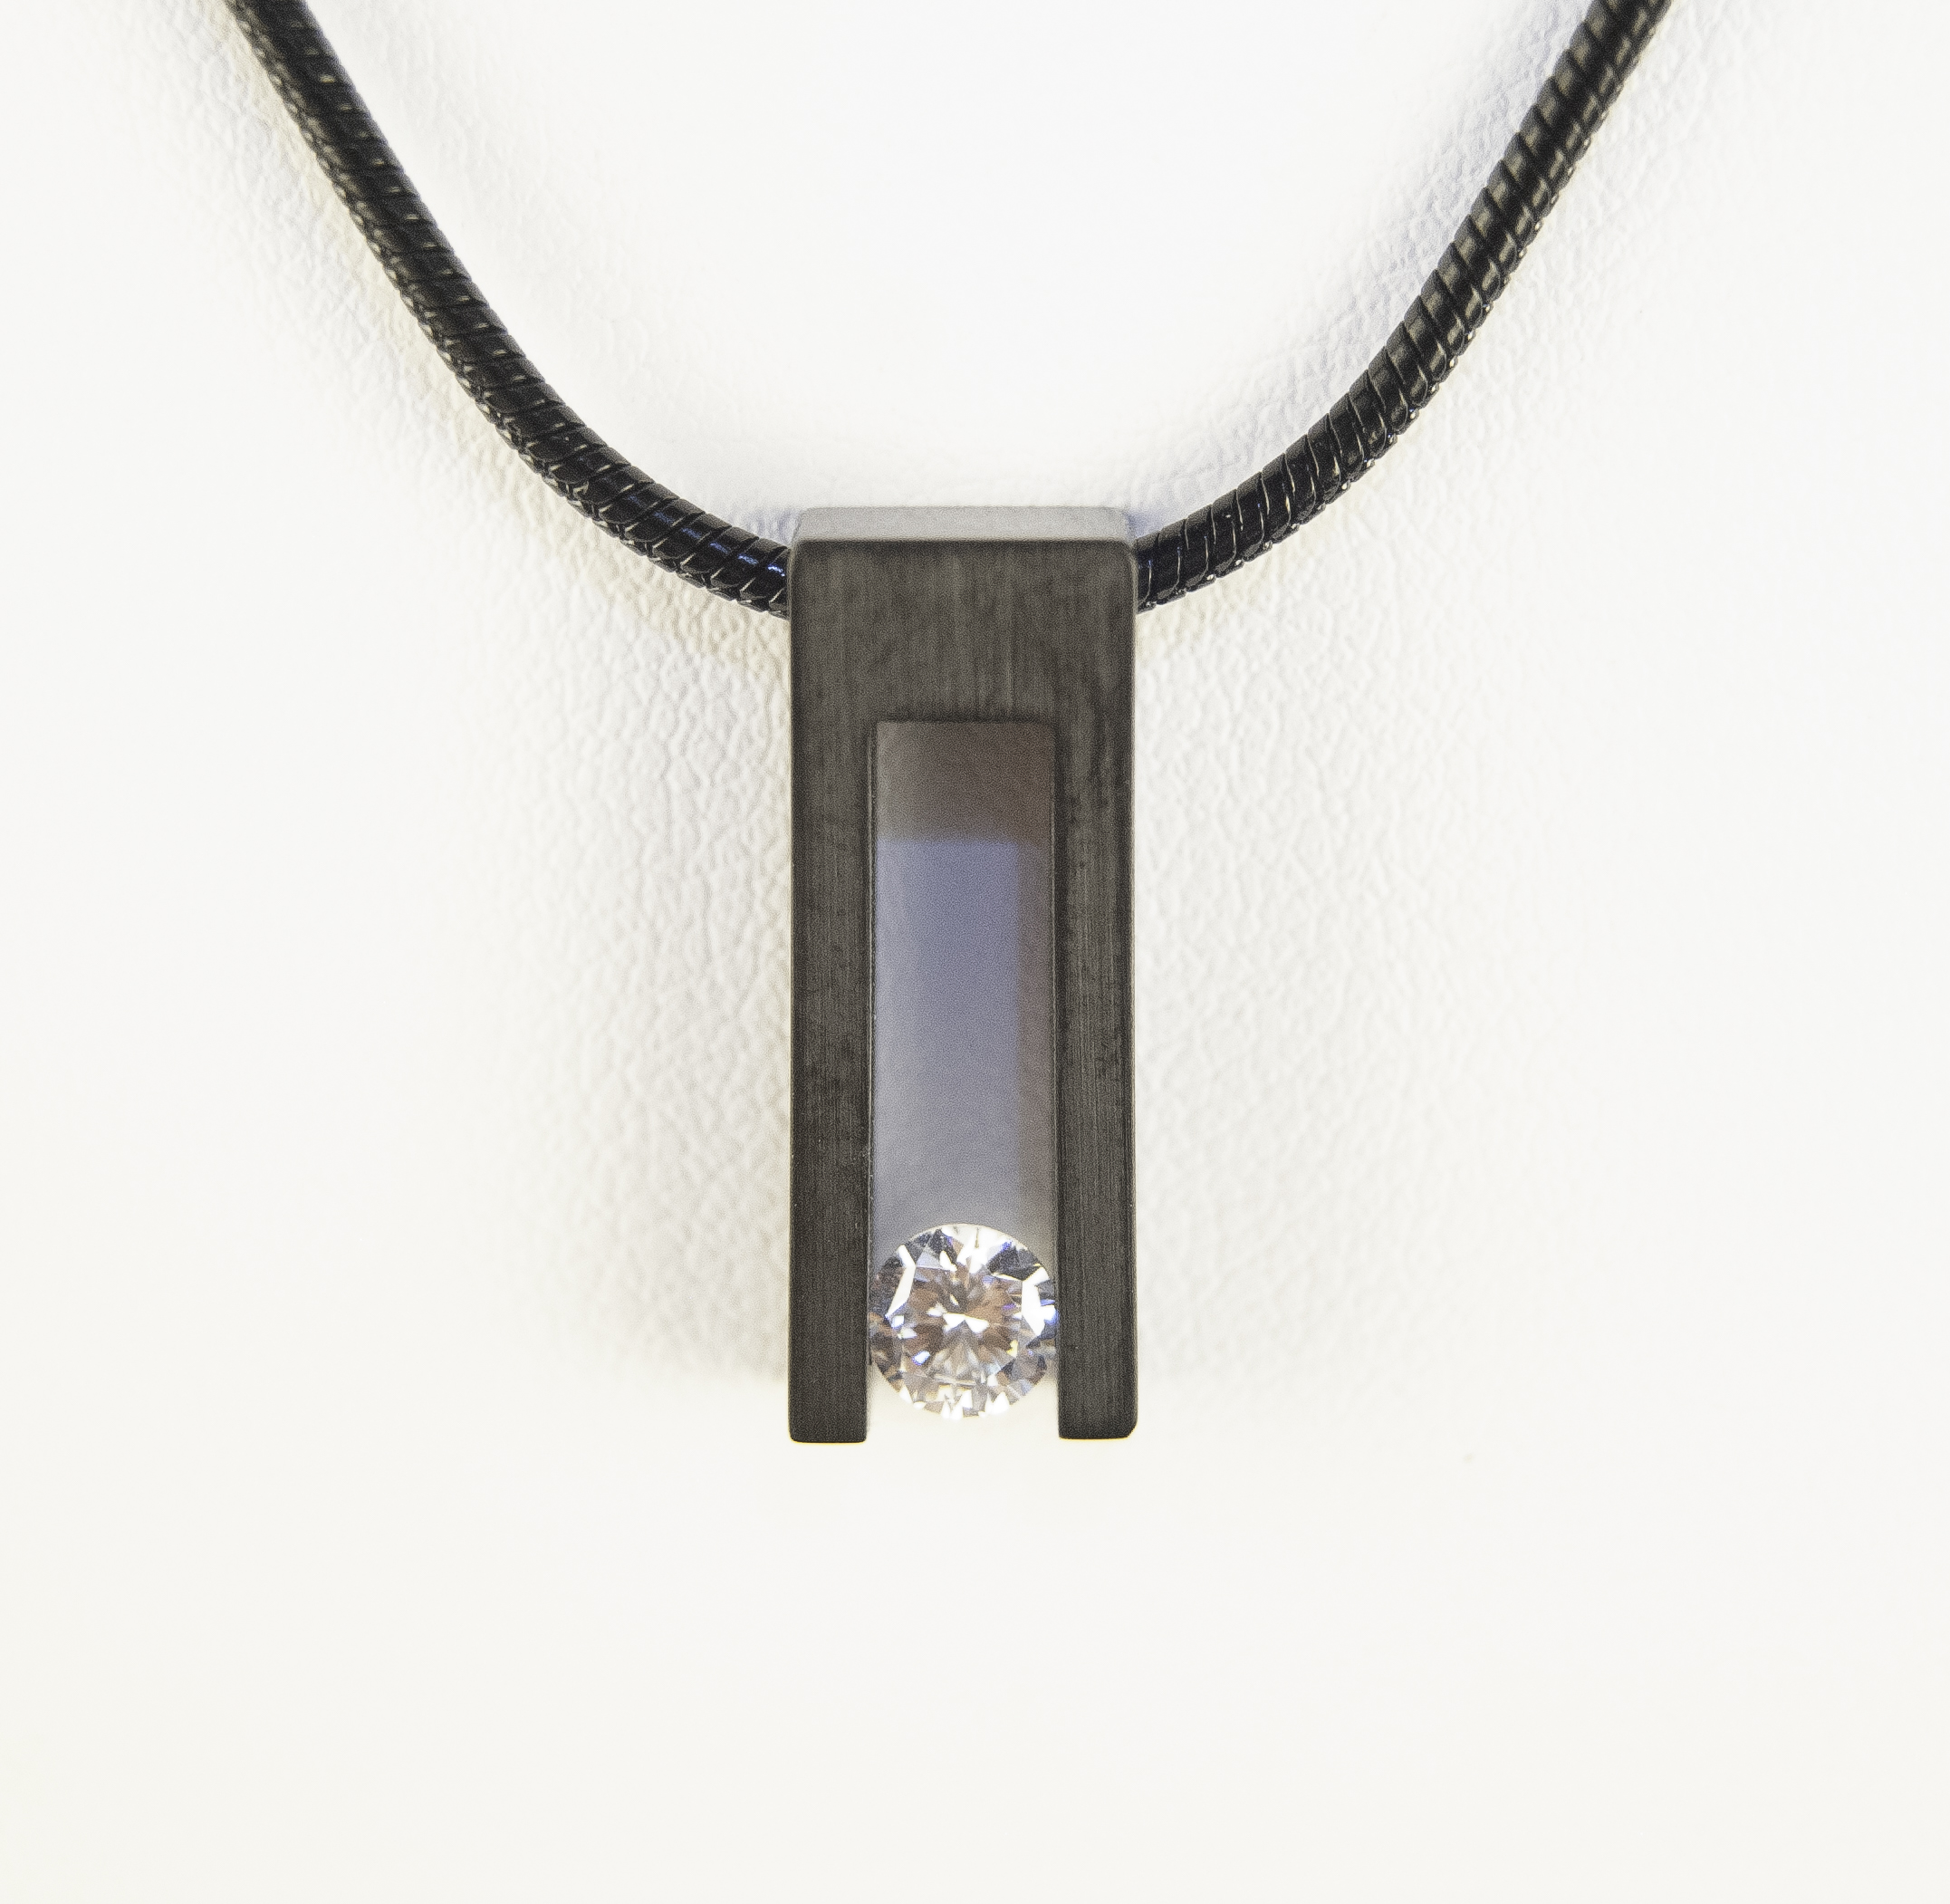 765-12   Black Stainless Steel Bar Pendant With One Round Cubic Zirconium, 20' Black Snake Chain $105.00